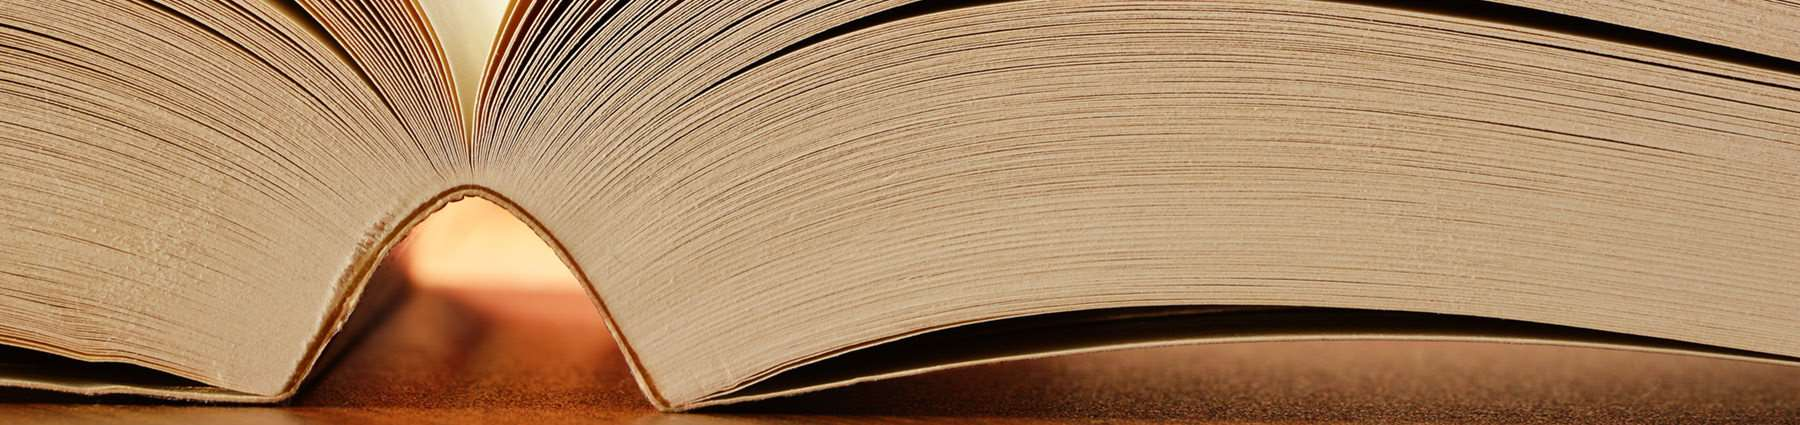 close up of an open book spine